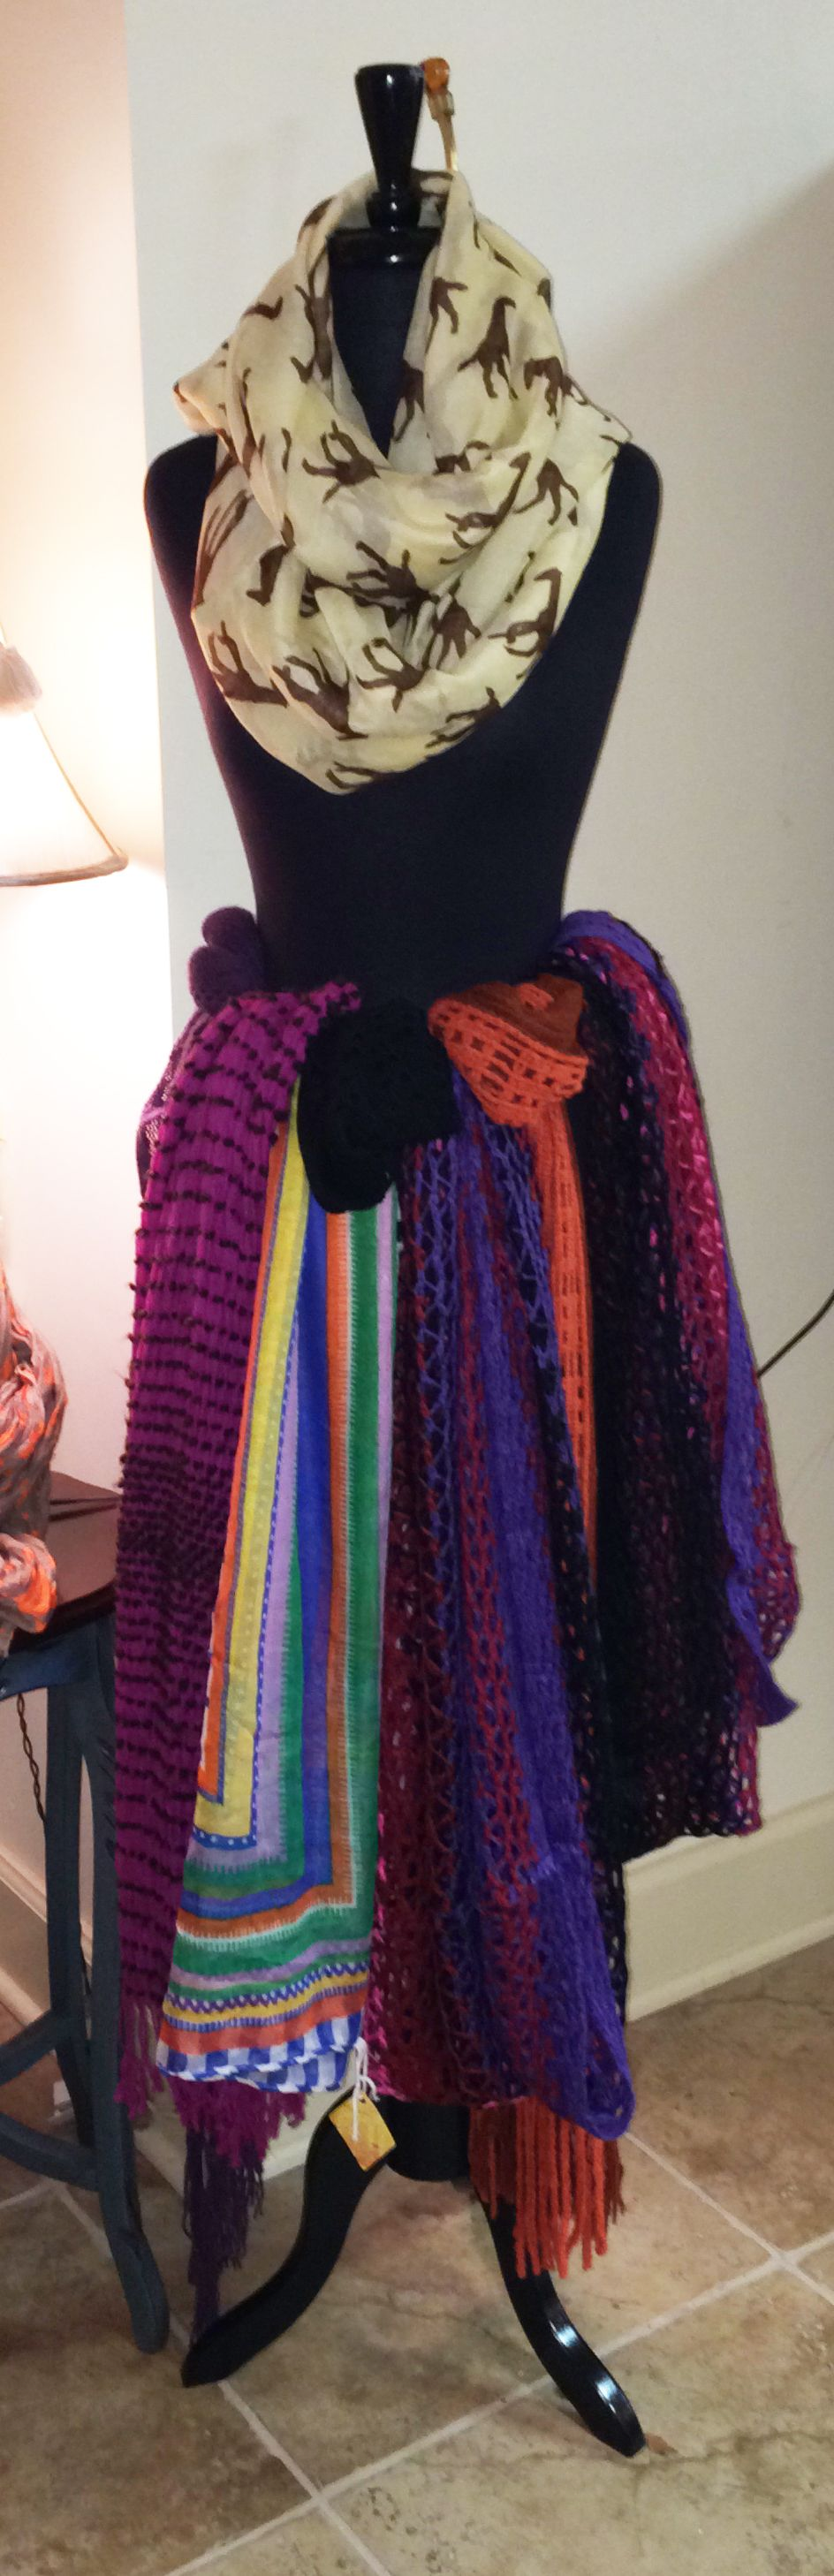 Fun way to display scarves! One around the neck and the rest as a ...